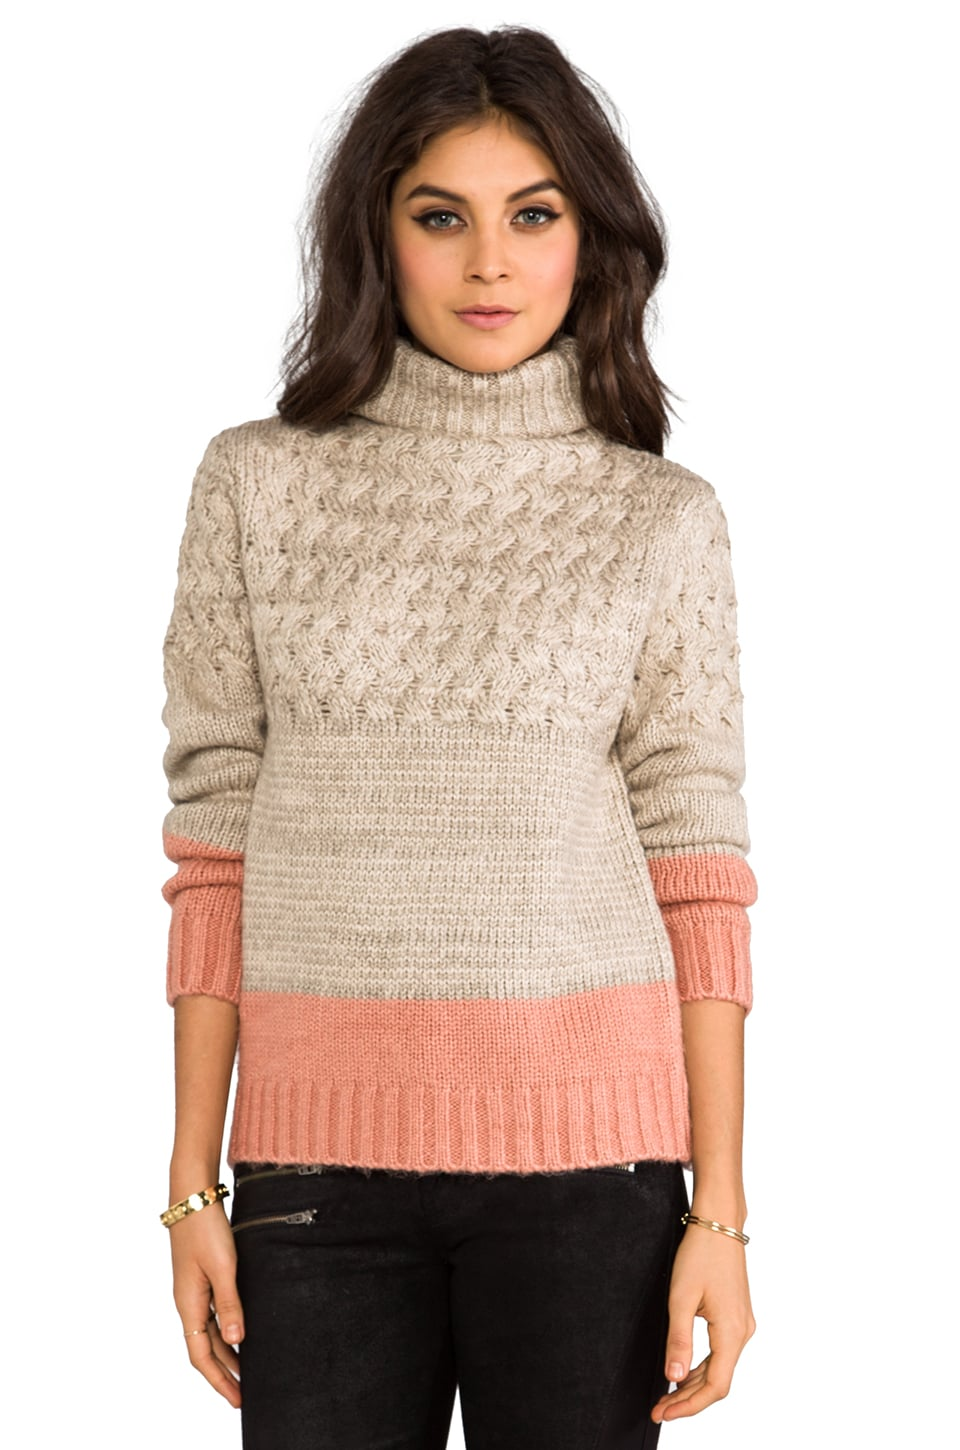 MM Couture by Miss Me Turtleneck Sweater in Beige